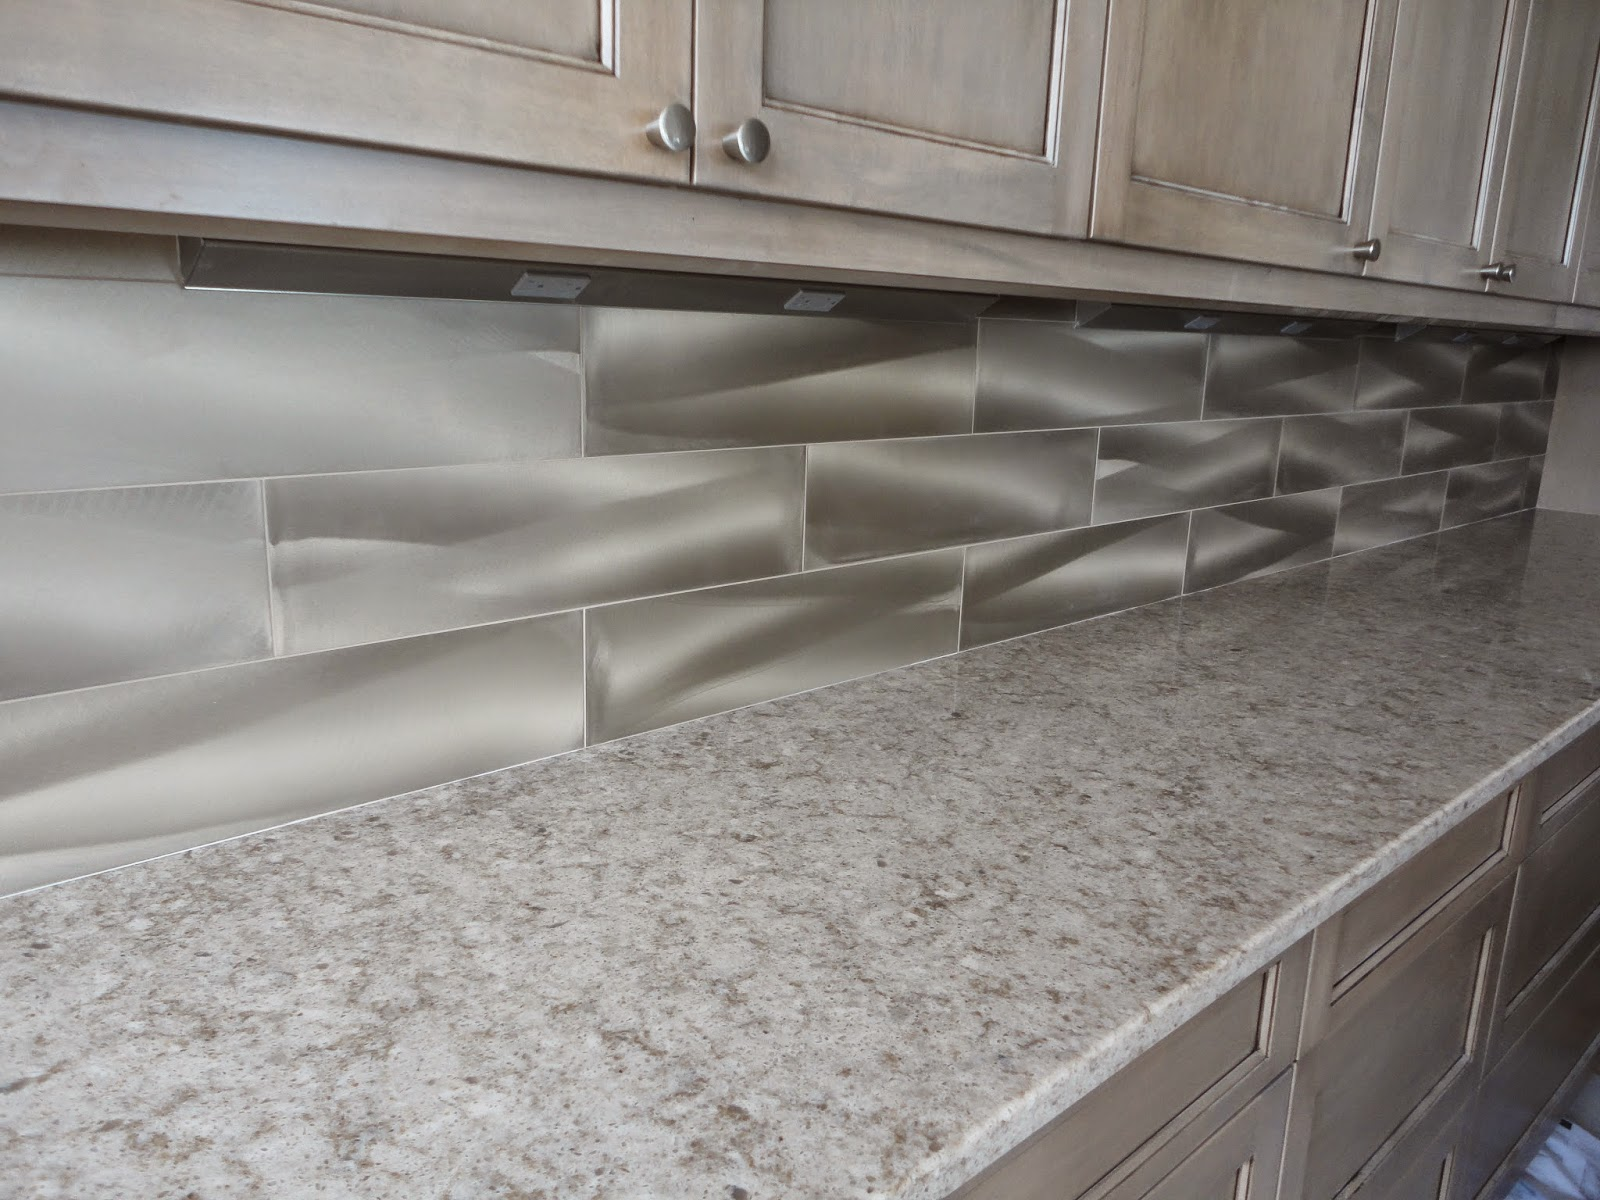 Tile Sarasota: Metaluxe tile install on a kitchen backsplash ...